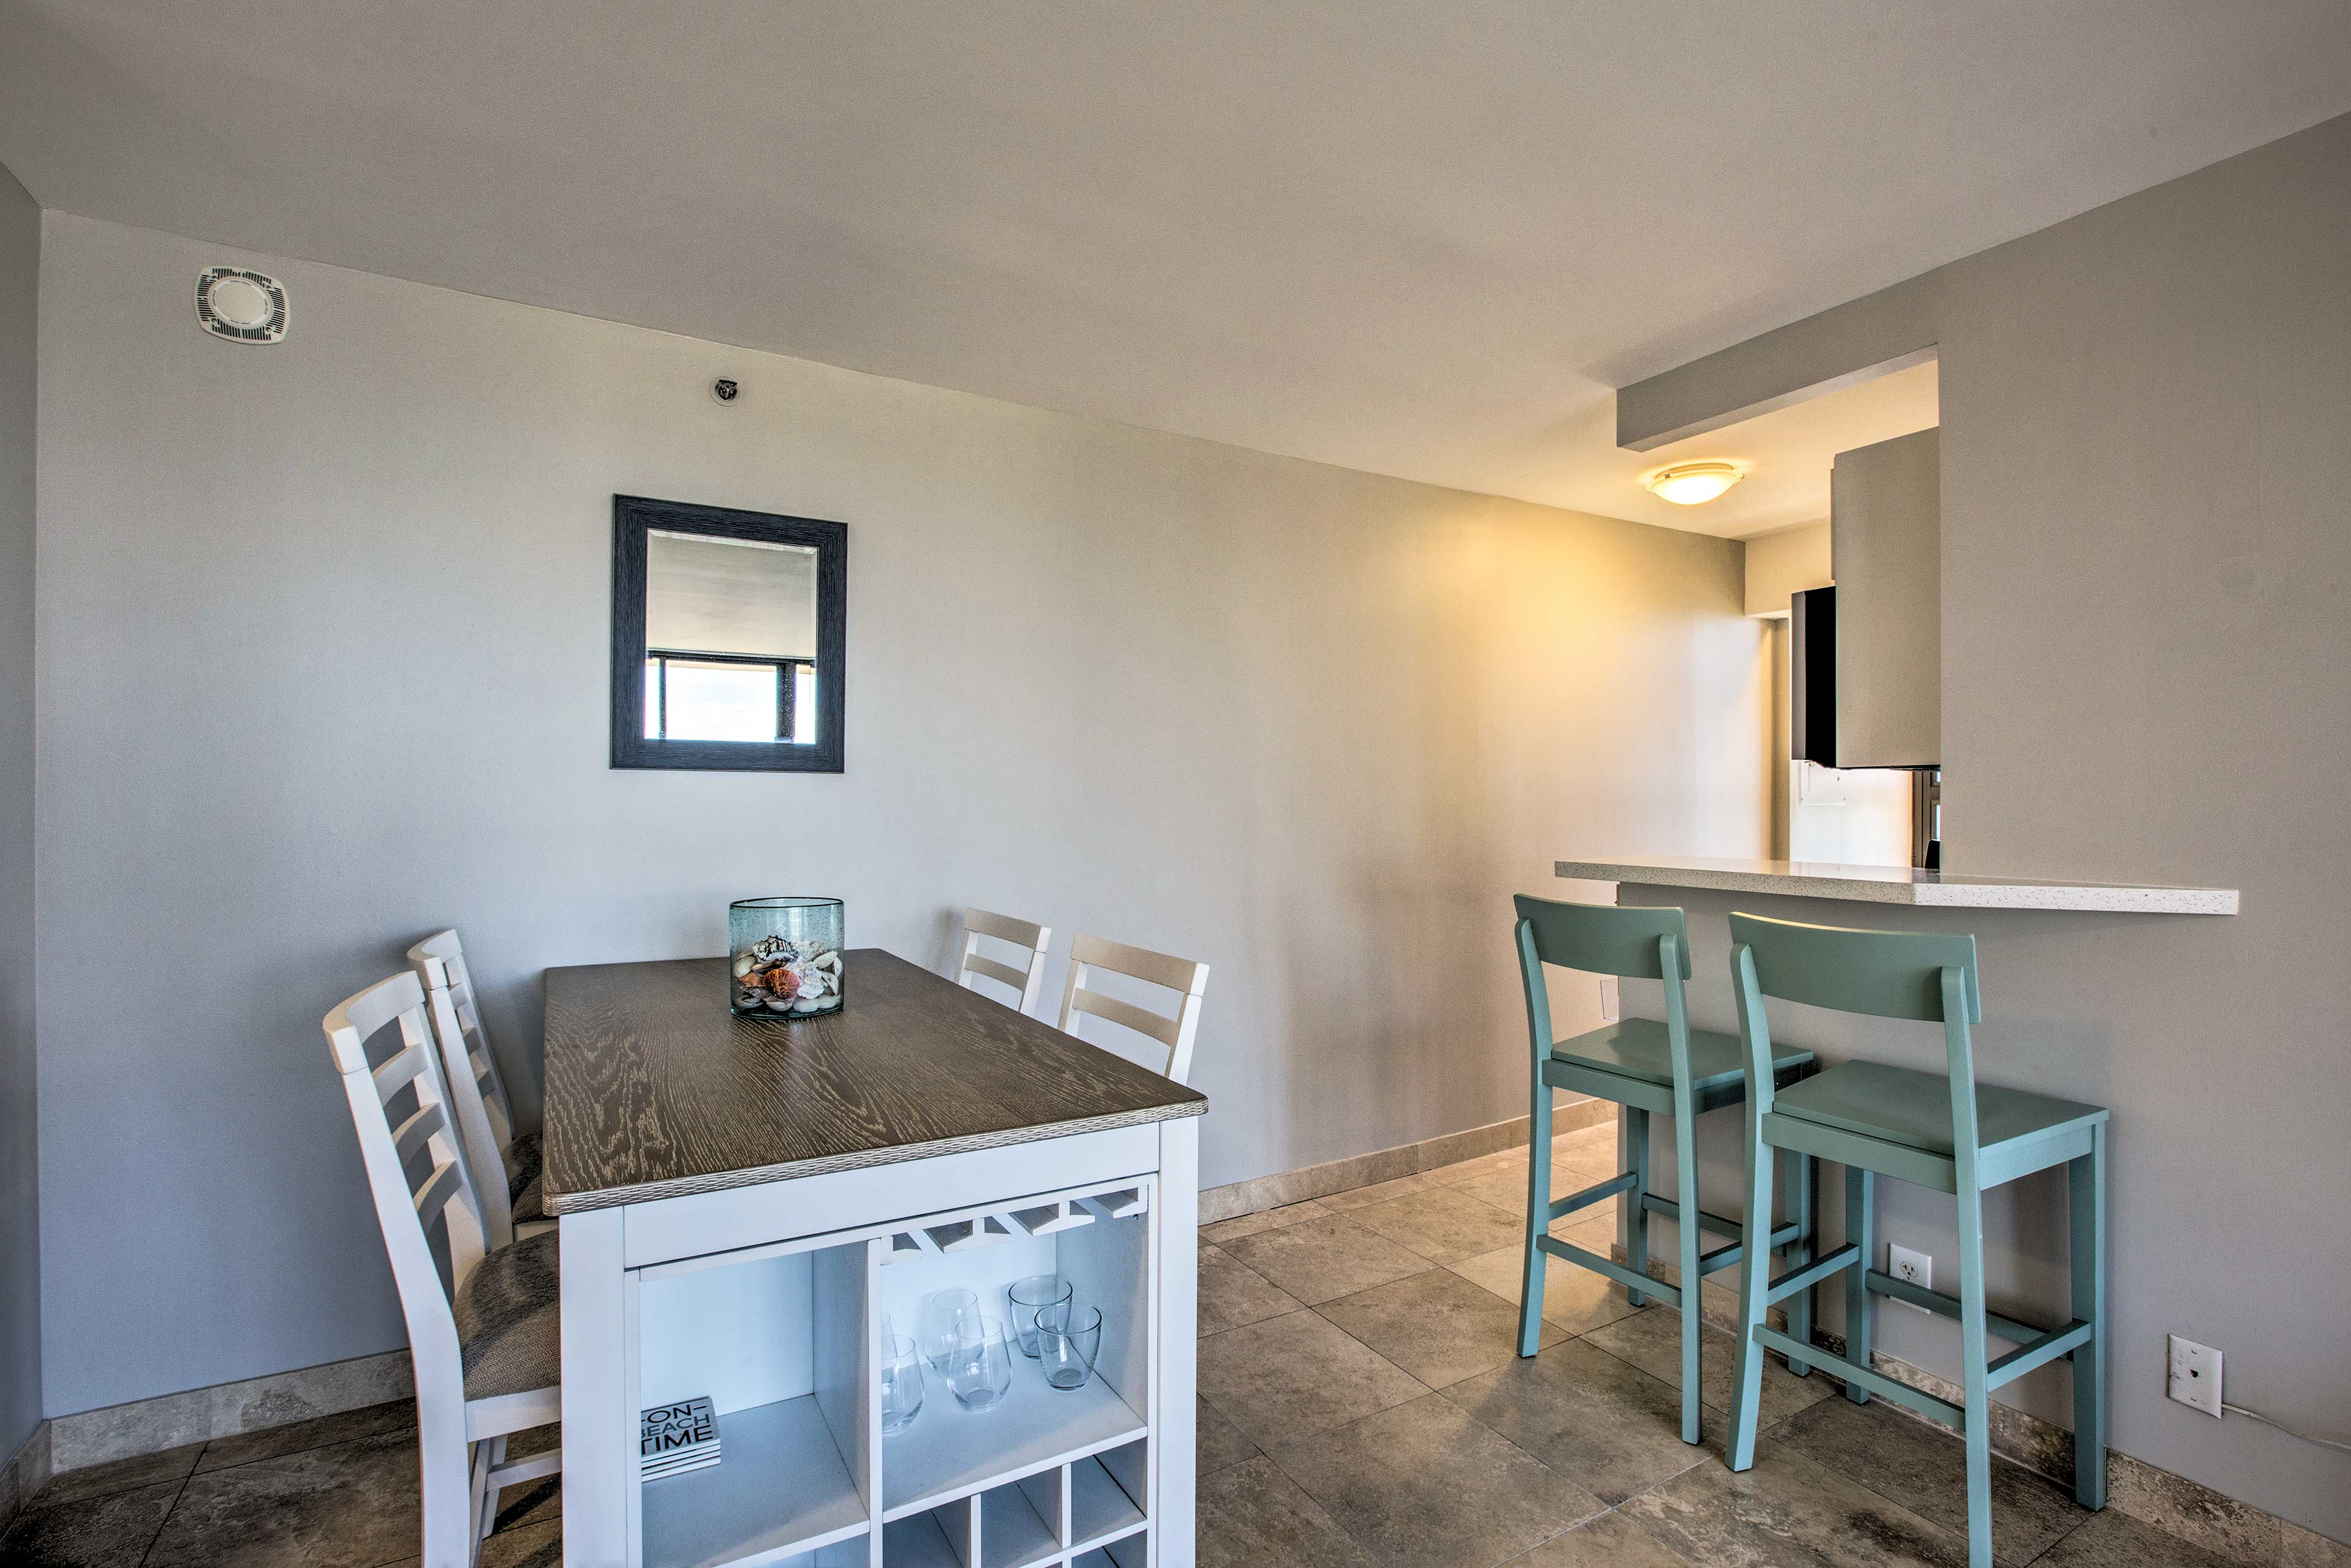 The condo has been recently remodeled with all new features and furnishings.